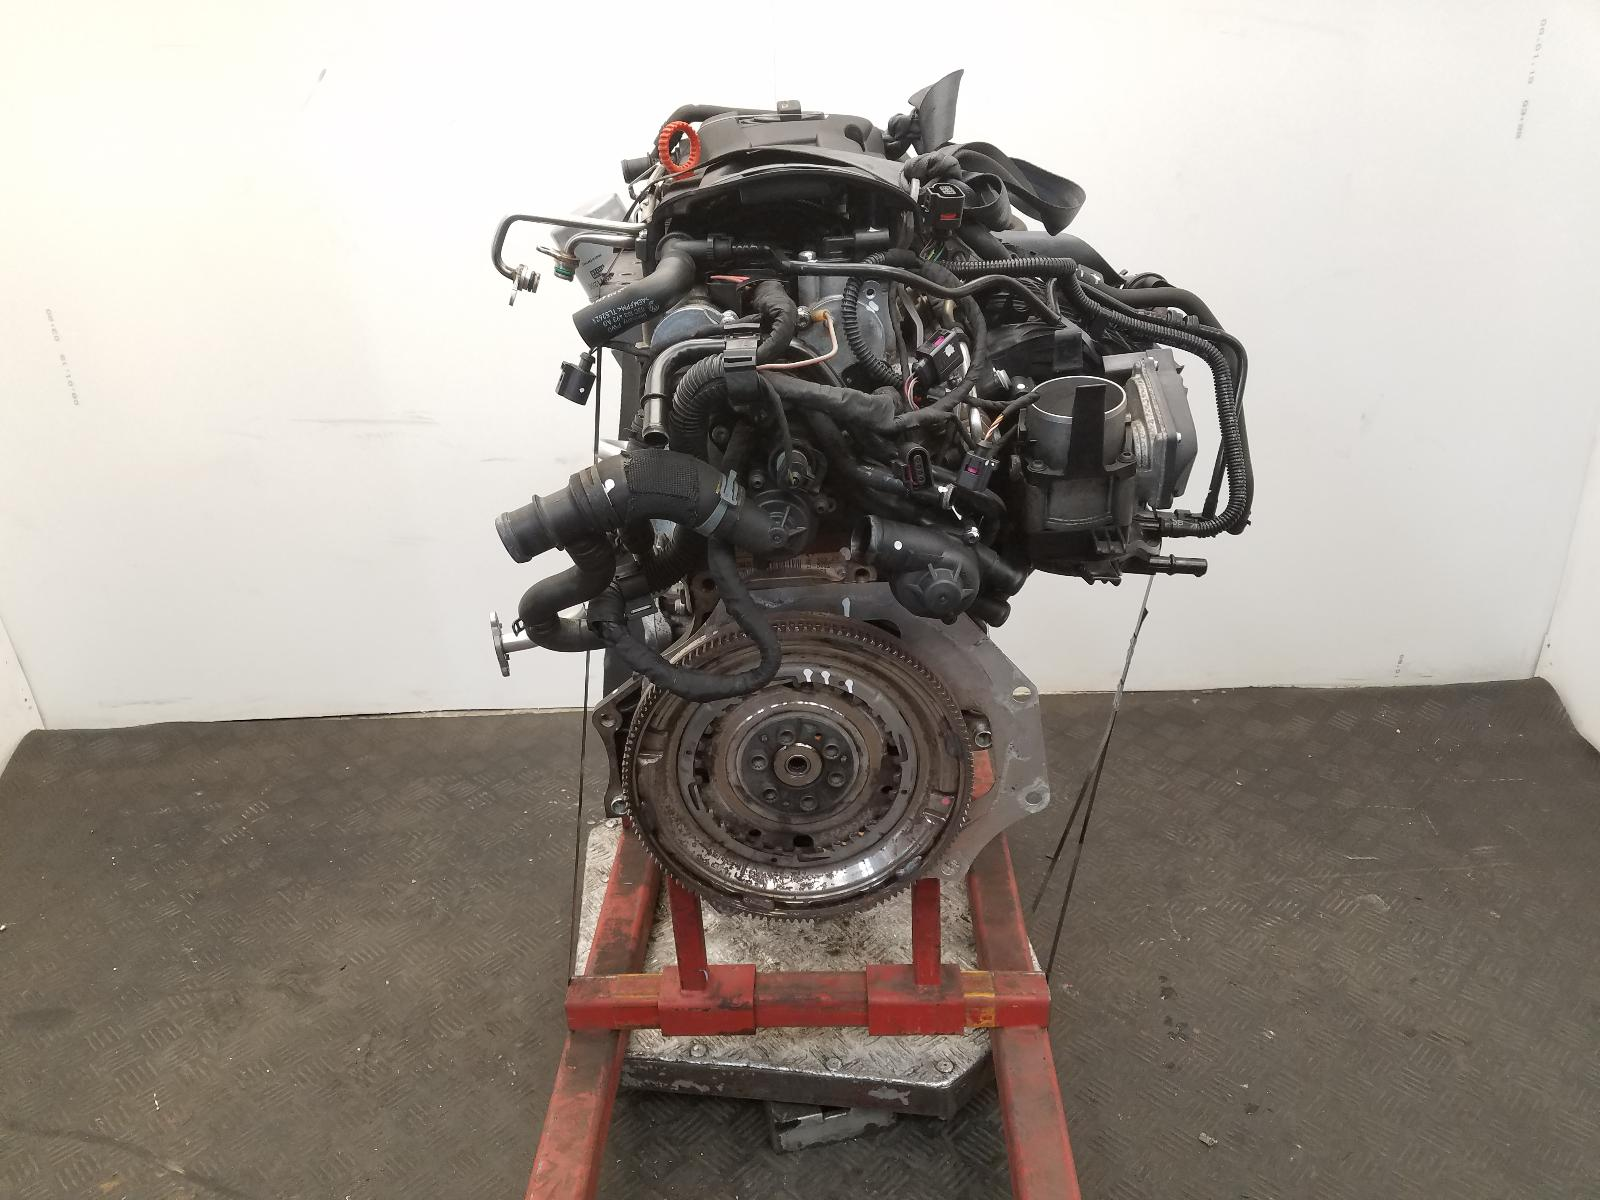 Image for a 2008 Volkswagen Golf 1.4 Petrol CAXA Engine